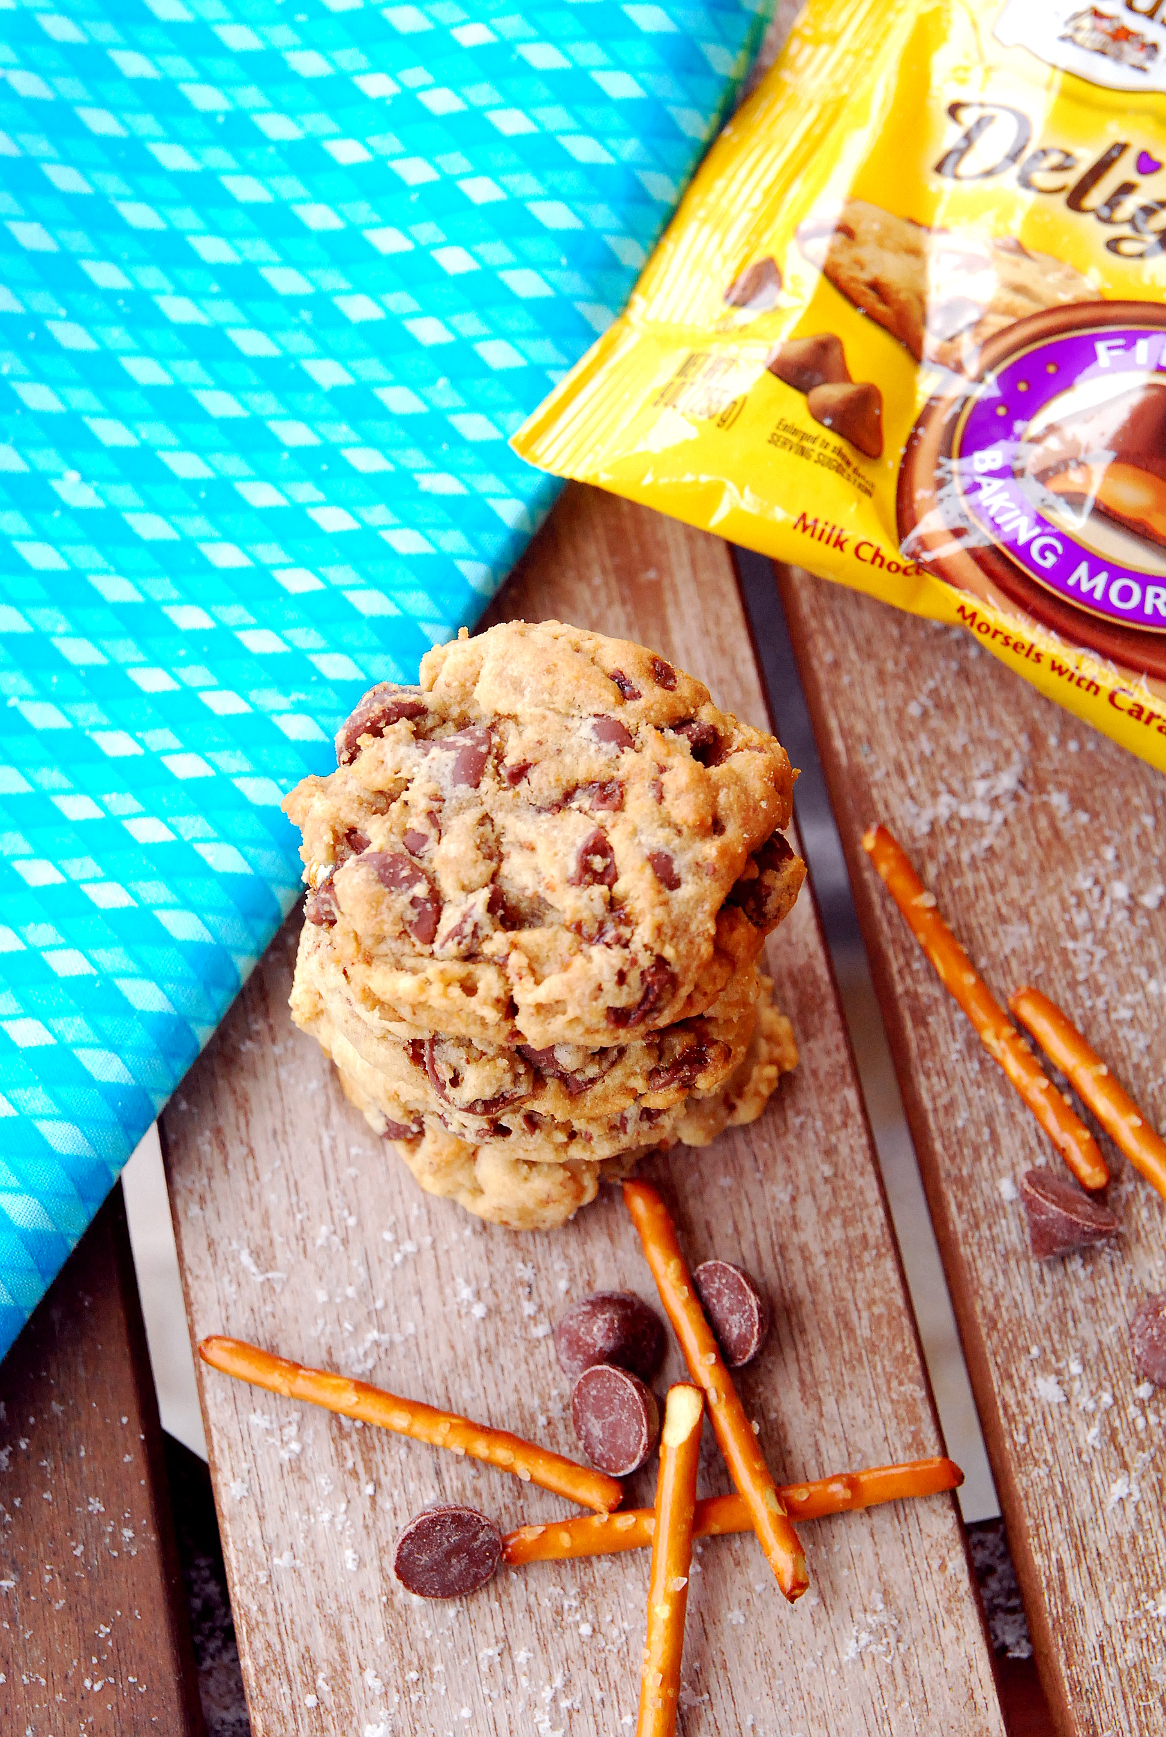 Sweet 'n Salty Milk Chocolate Caramel Pretzel Cookies